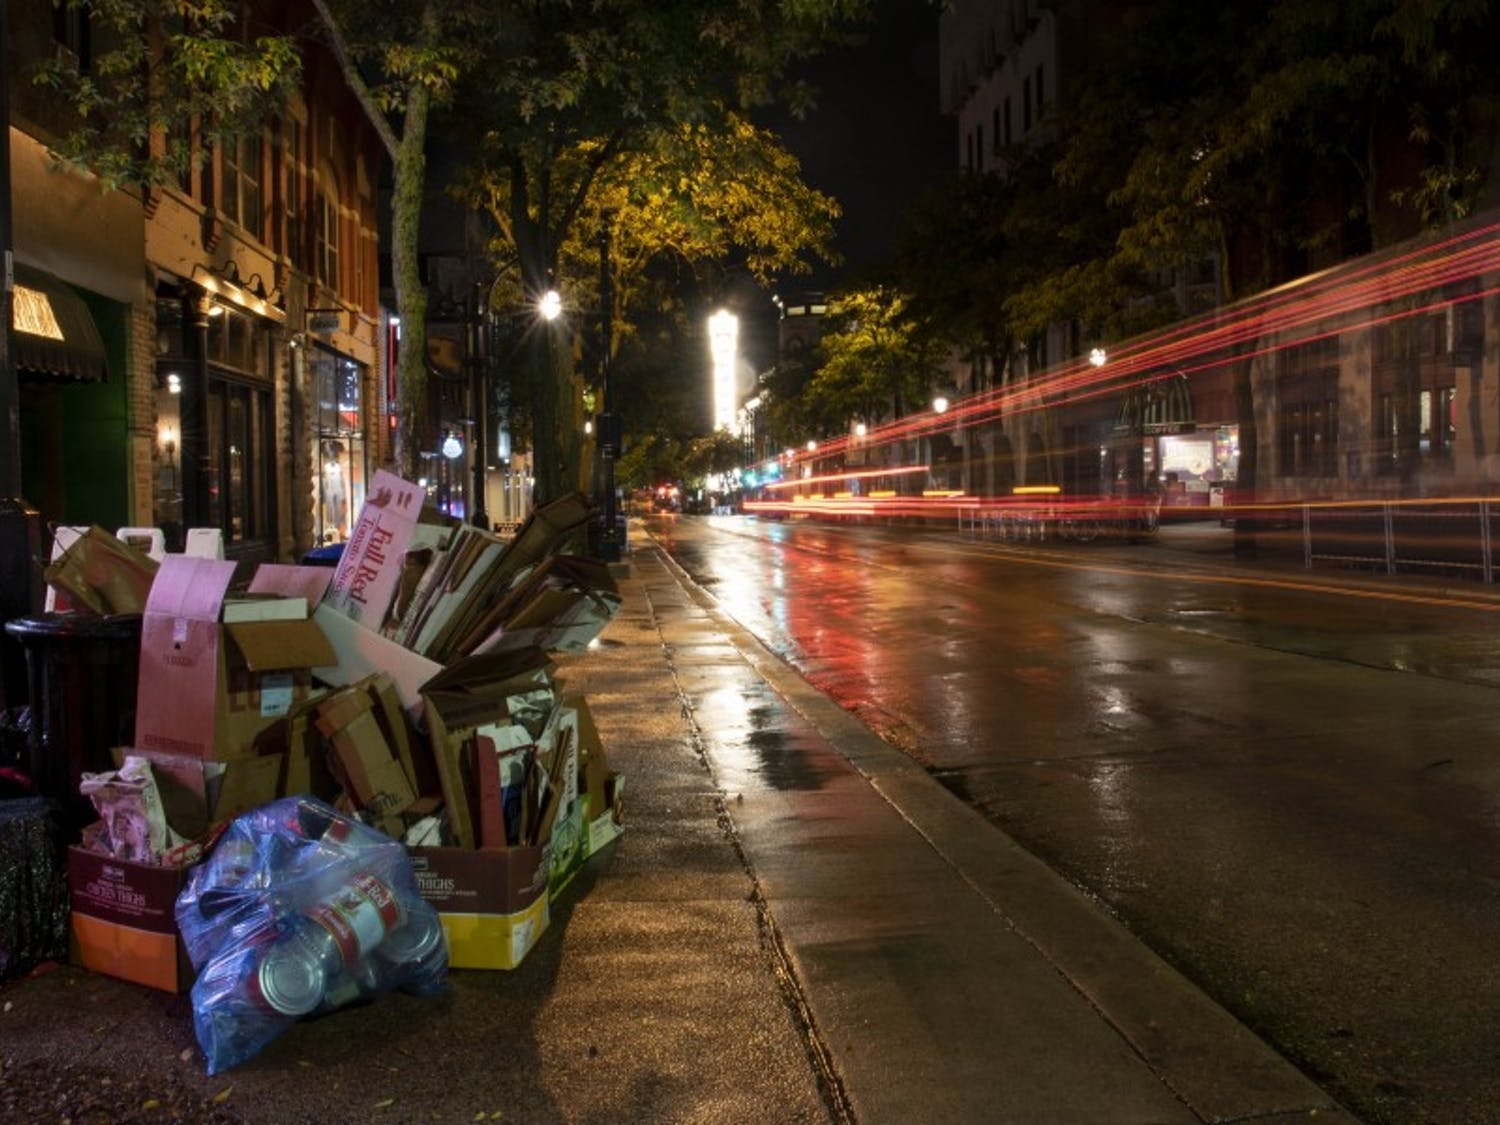 City officials have opposing views on nighttime safety initiatives and funding.